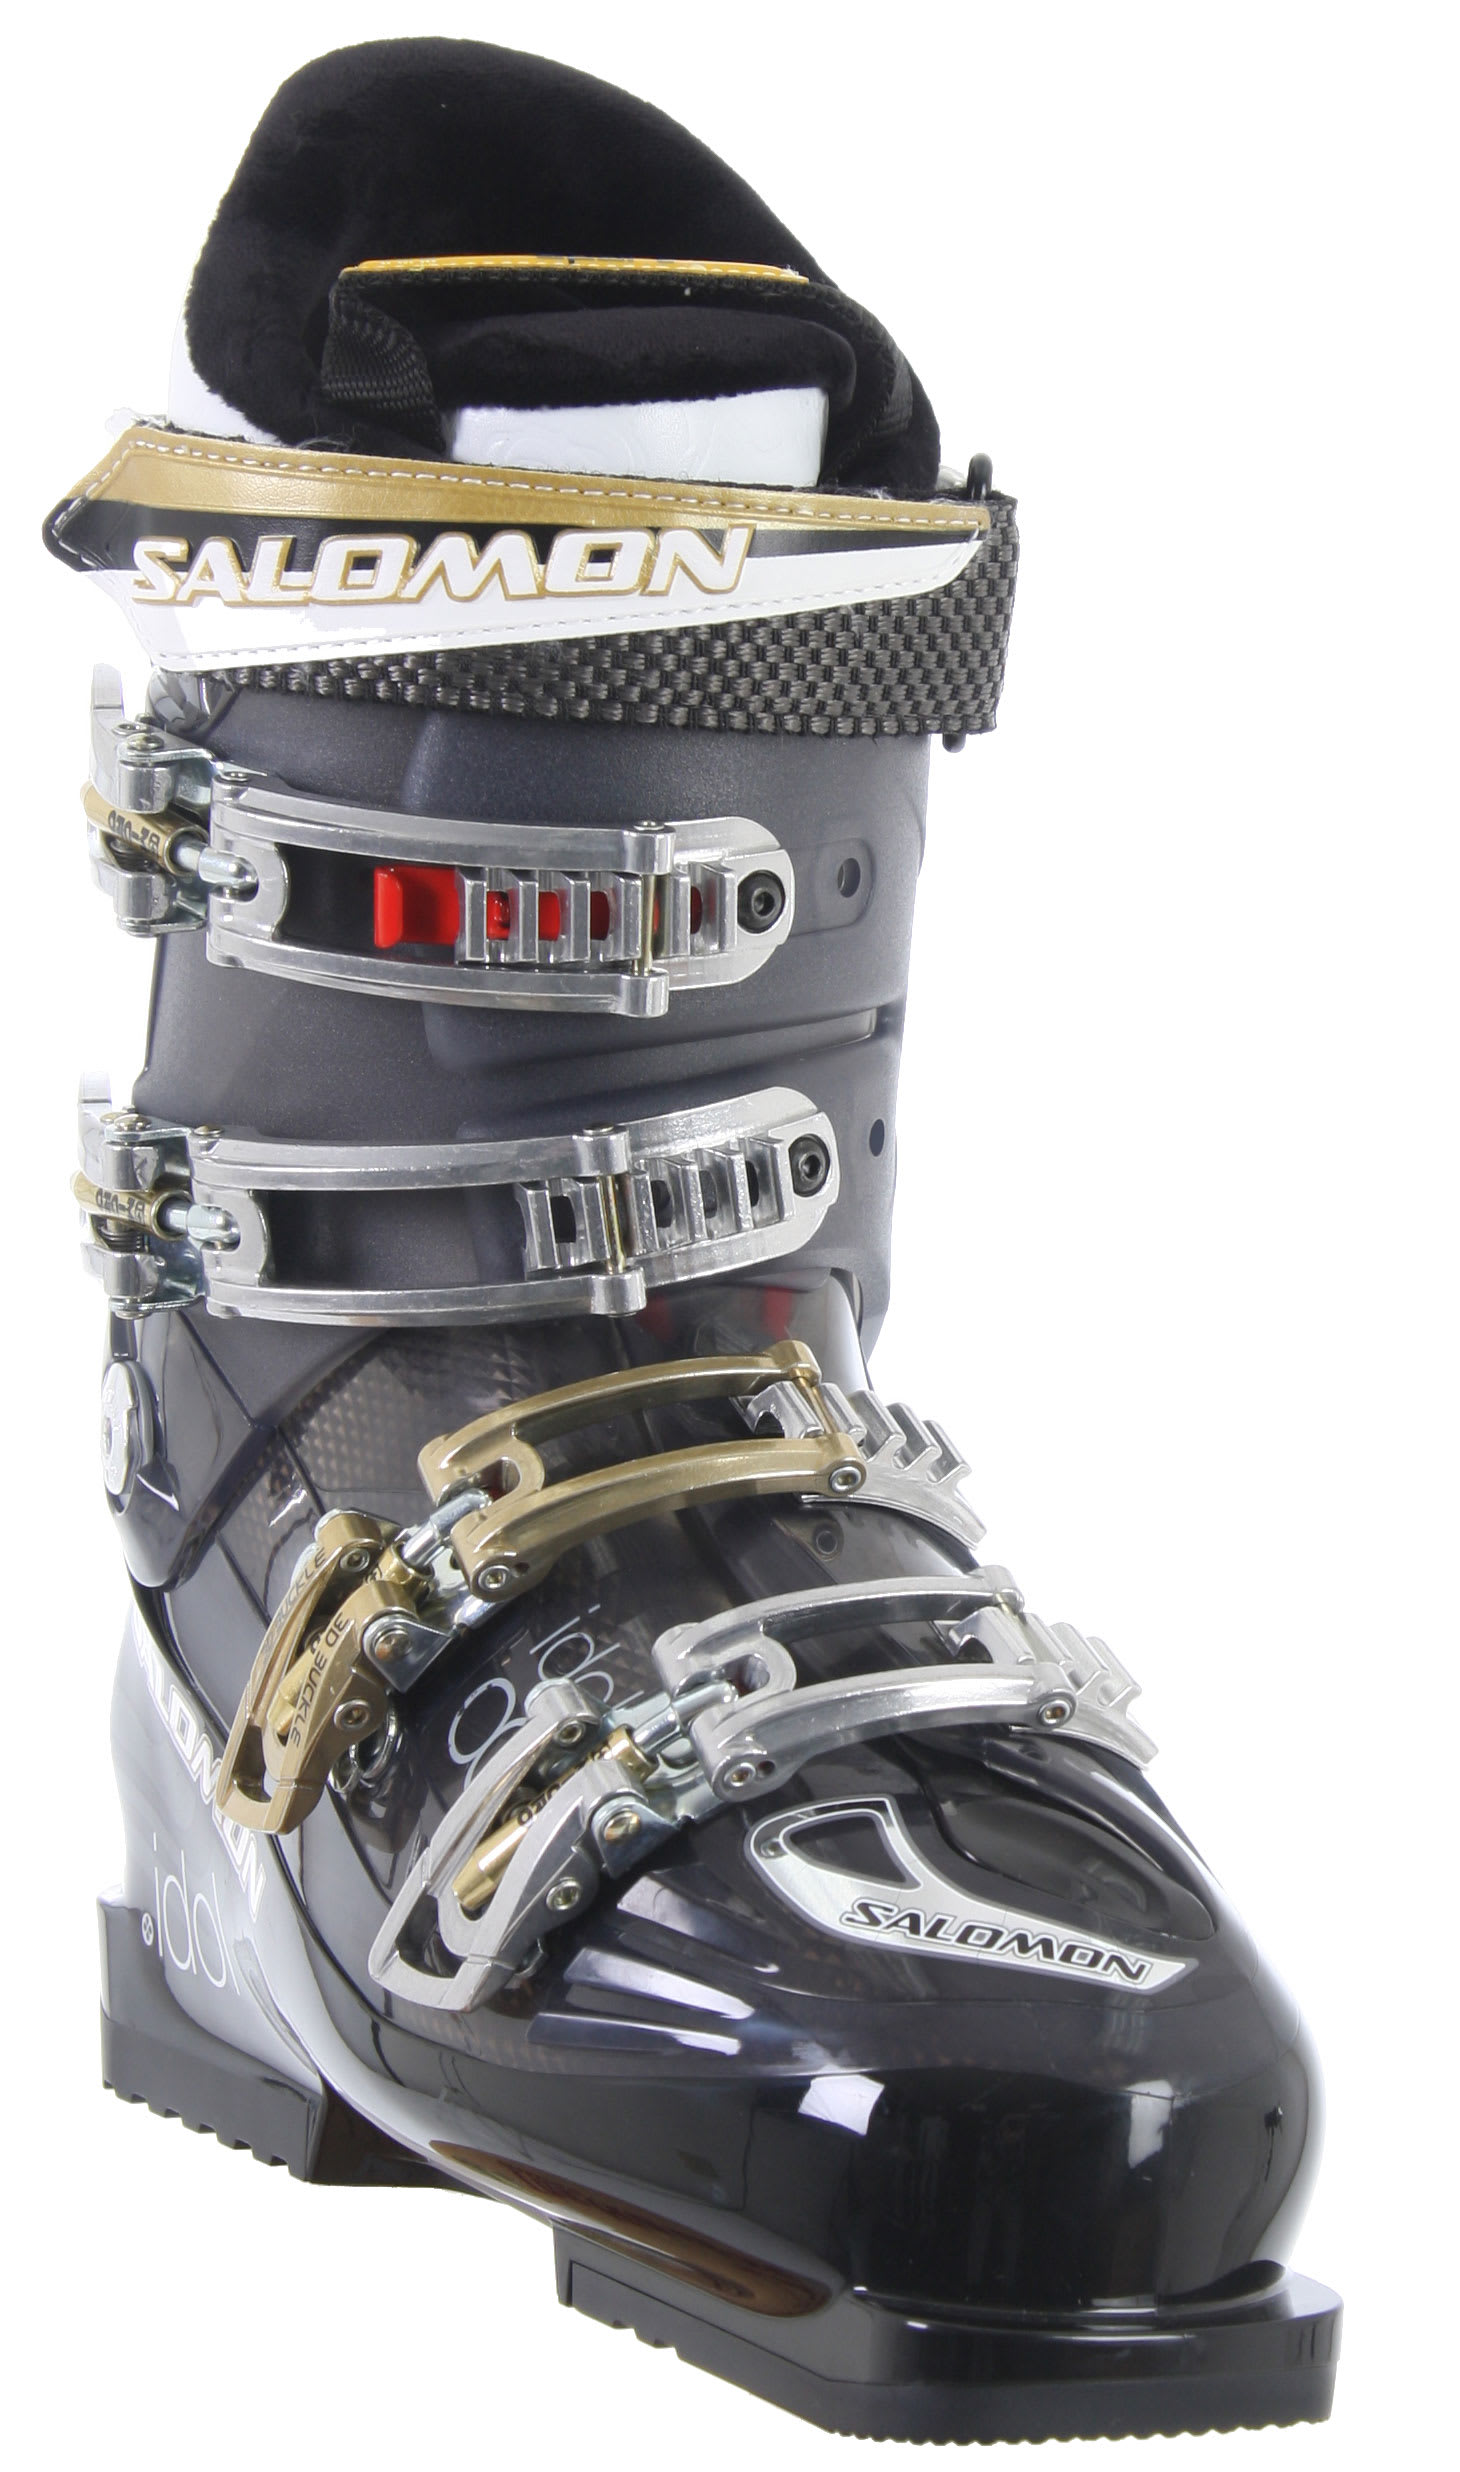 On Sale Salomon Idol 8 Ski Boots Womens Up To 75 Off